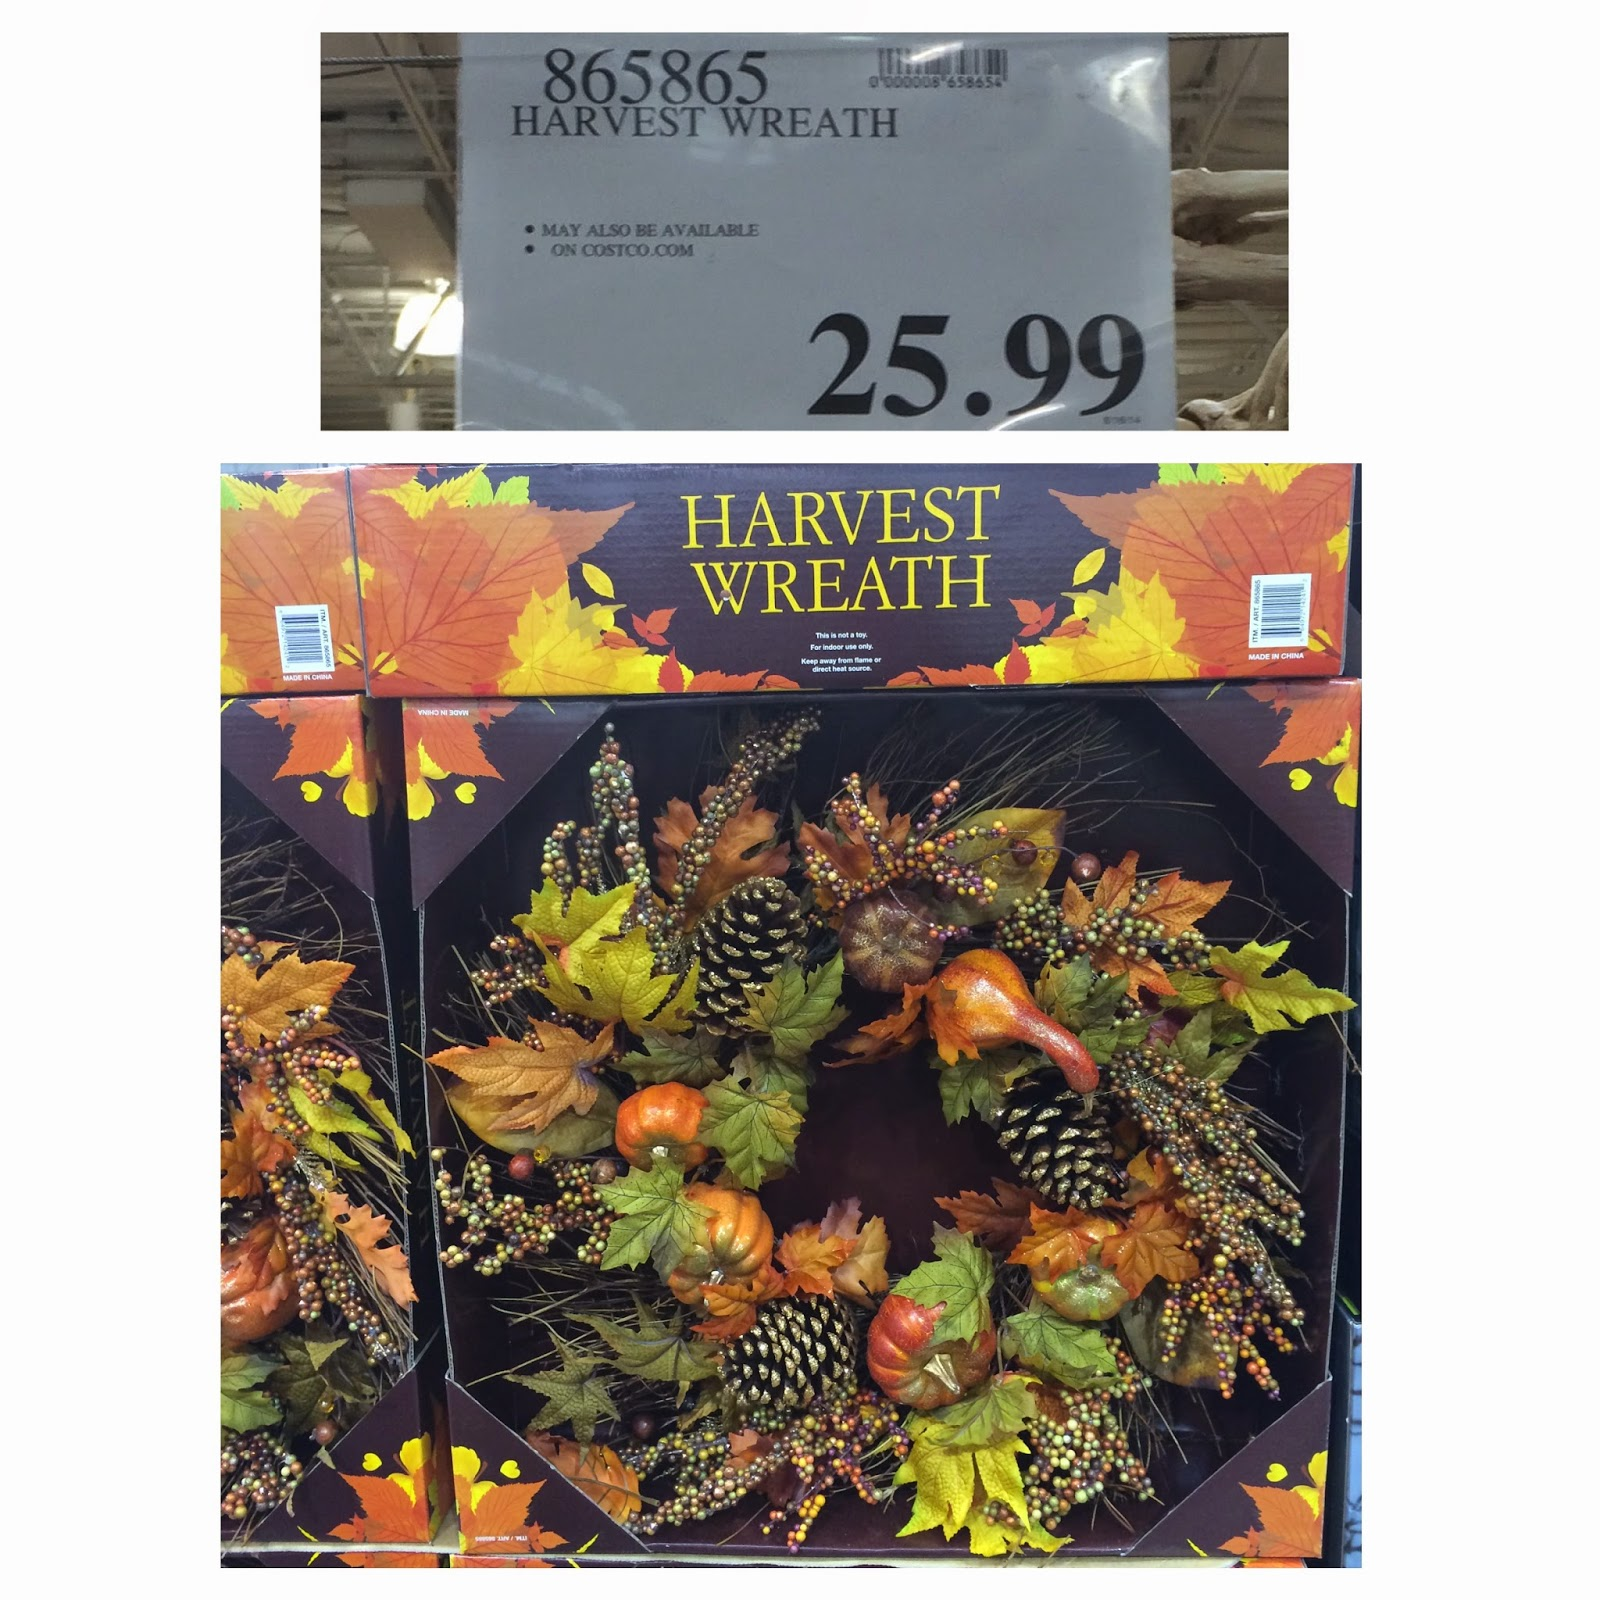 9edc7bf4364343 ... the changing of the seasons. Hang it on your front door now and enjoy  it through Thanksgiving. The Harvest Wreath is currently sold out on Costco .com.